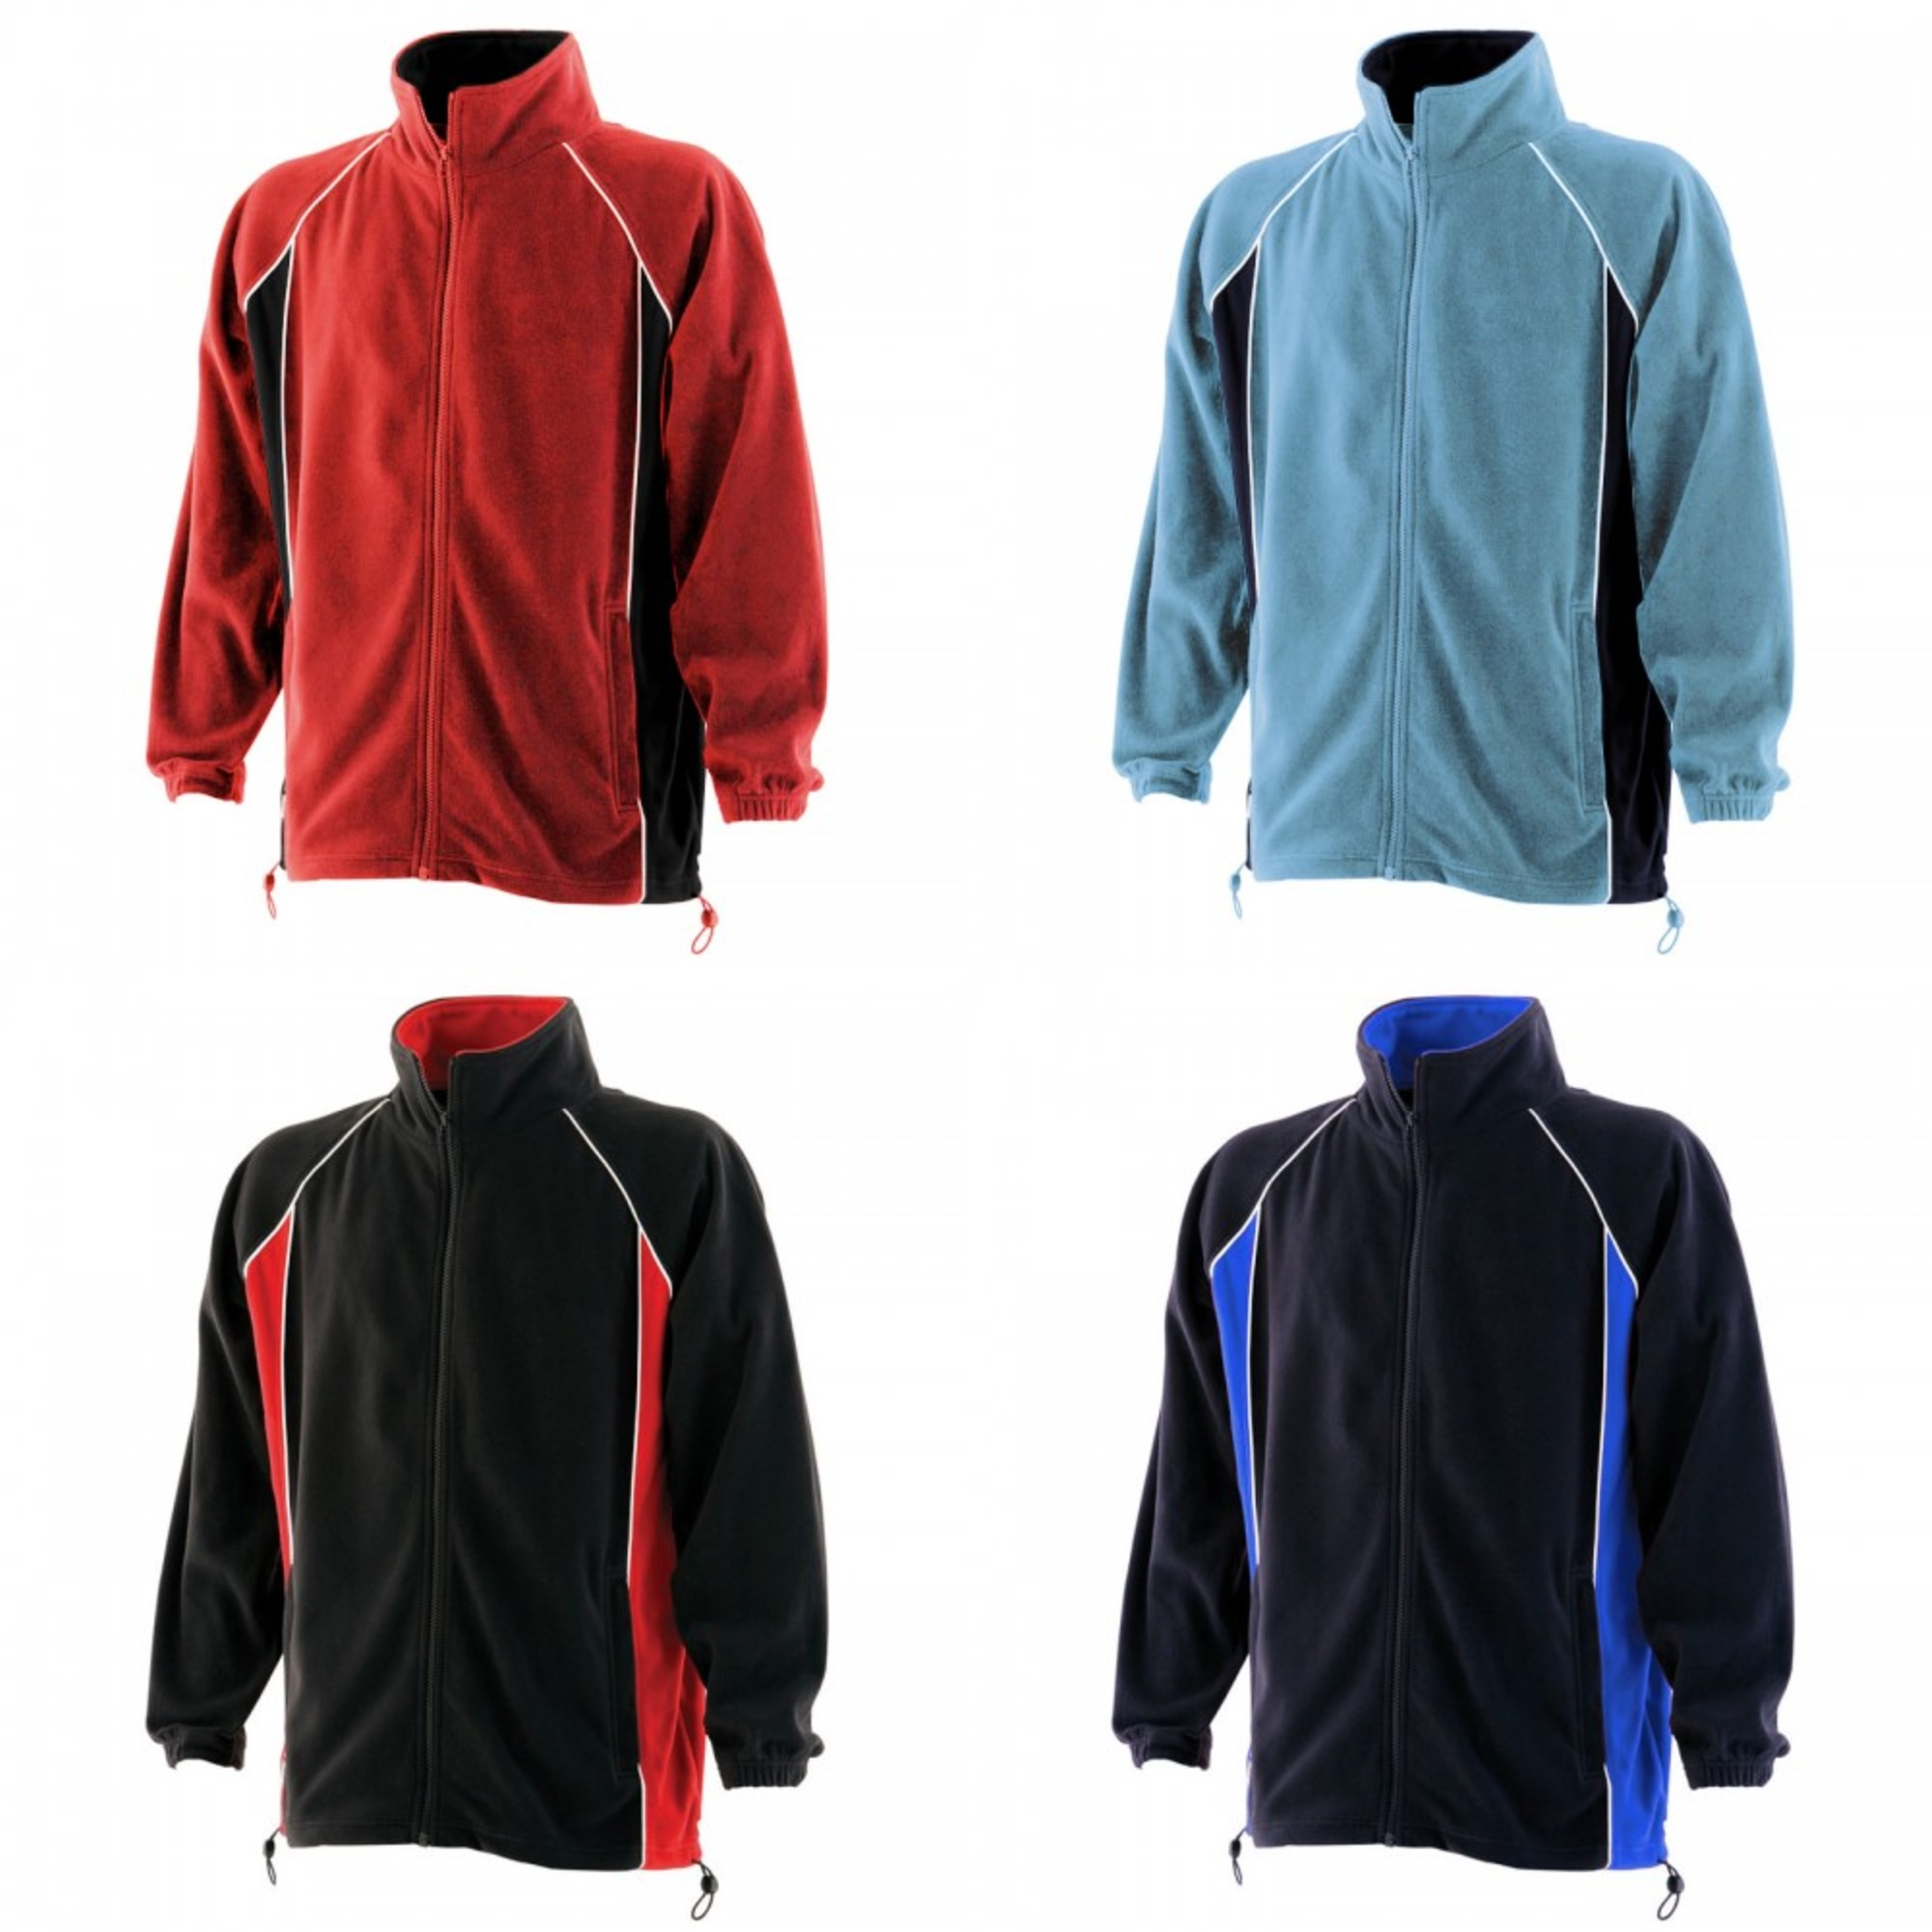 RW434 Details about  /Finden /& Hales Mens Piped Anti-Pill Microfleece Jacket